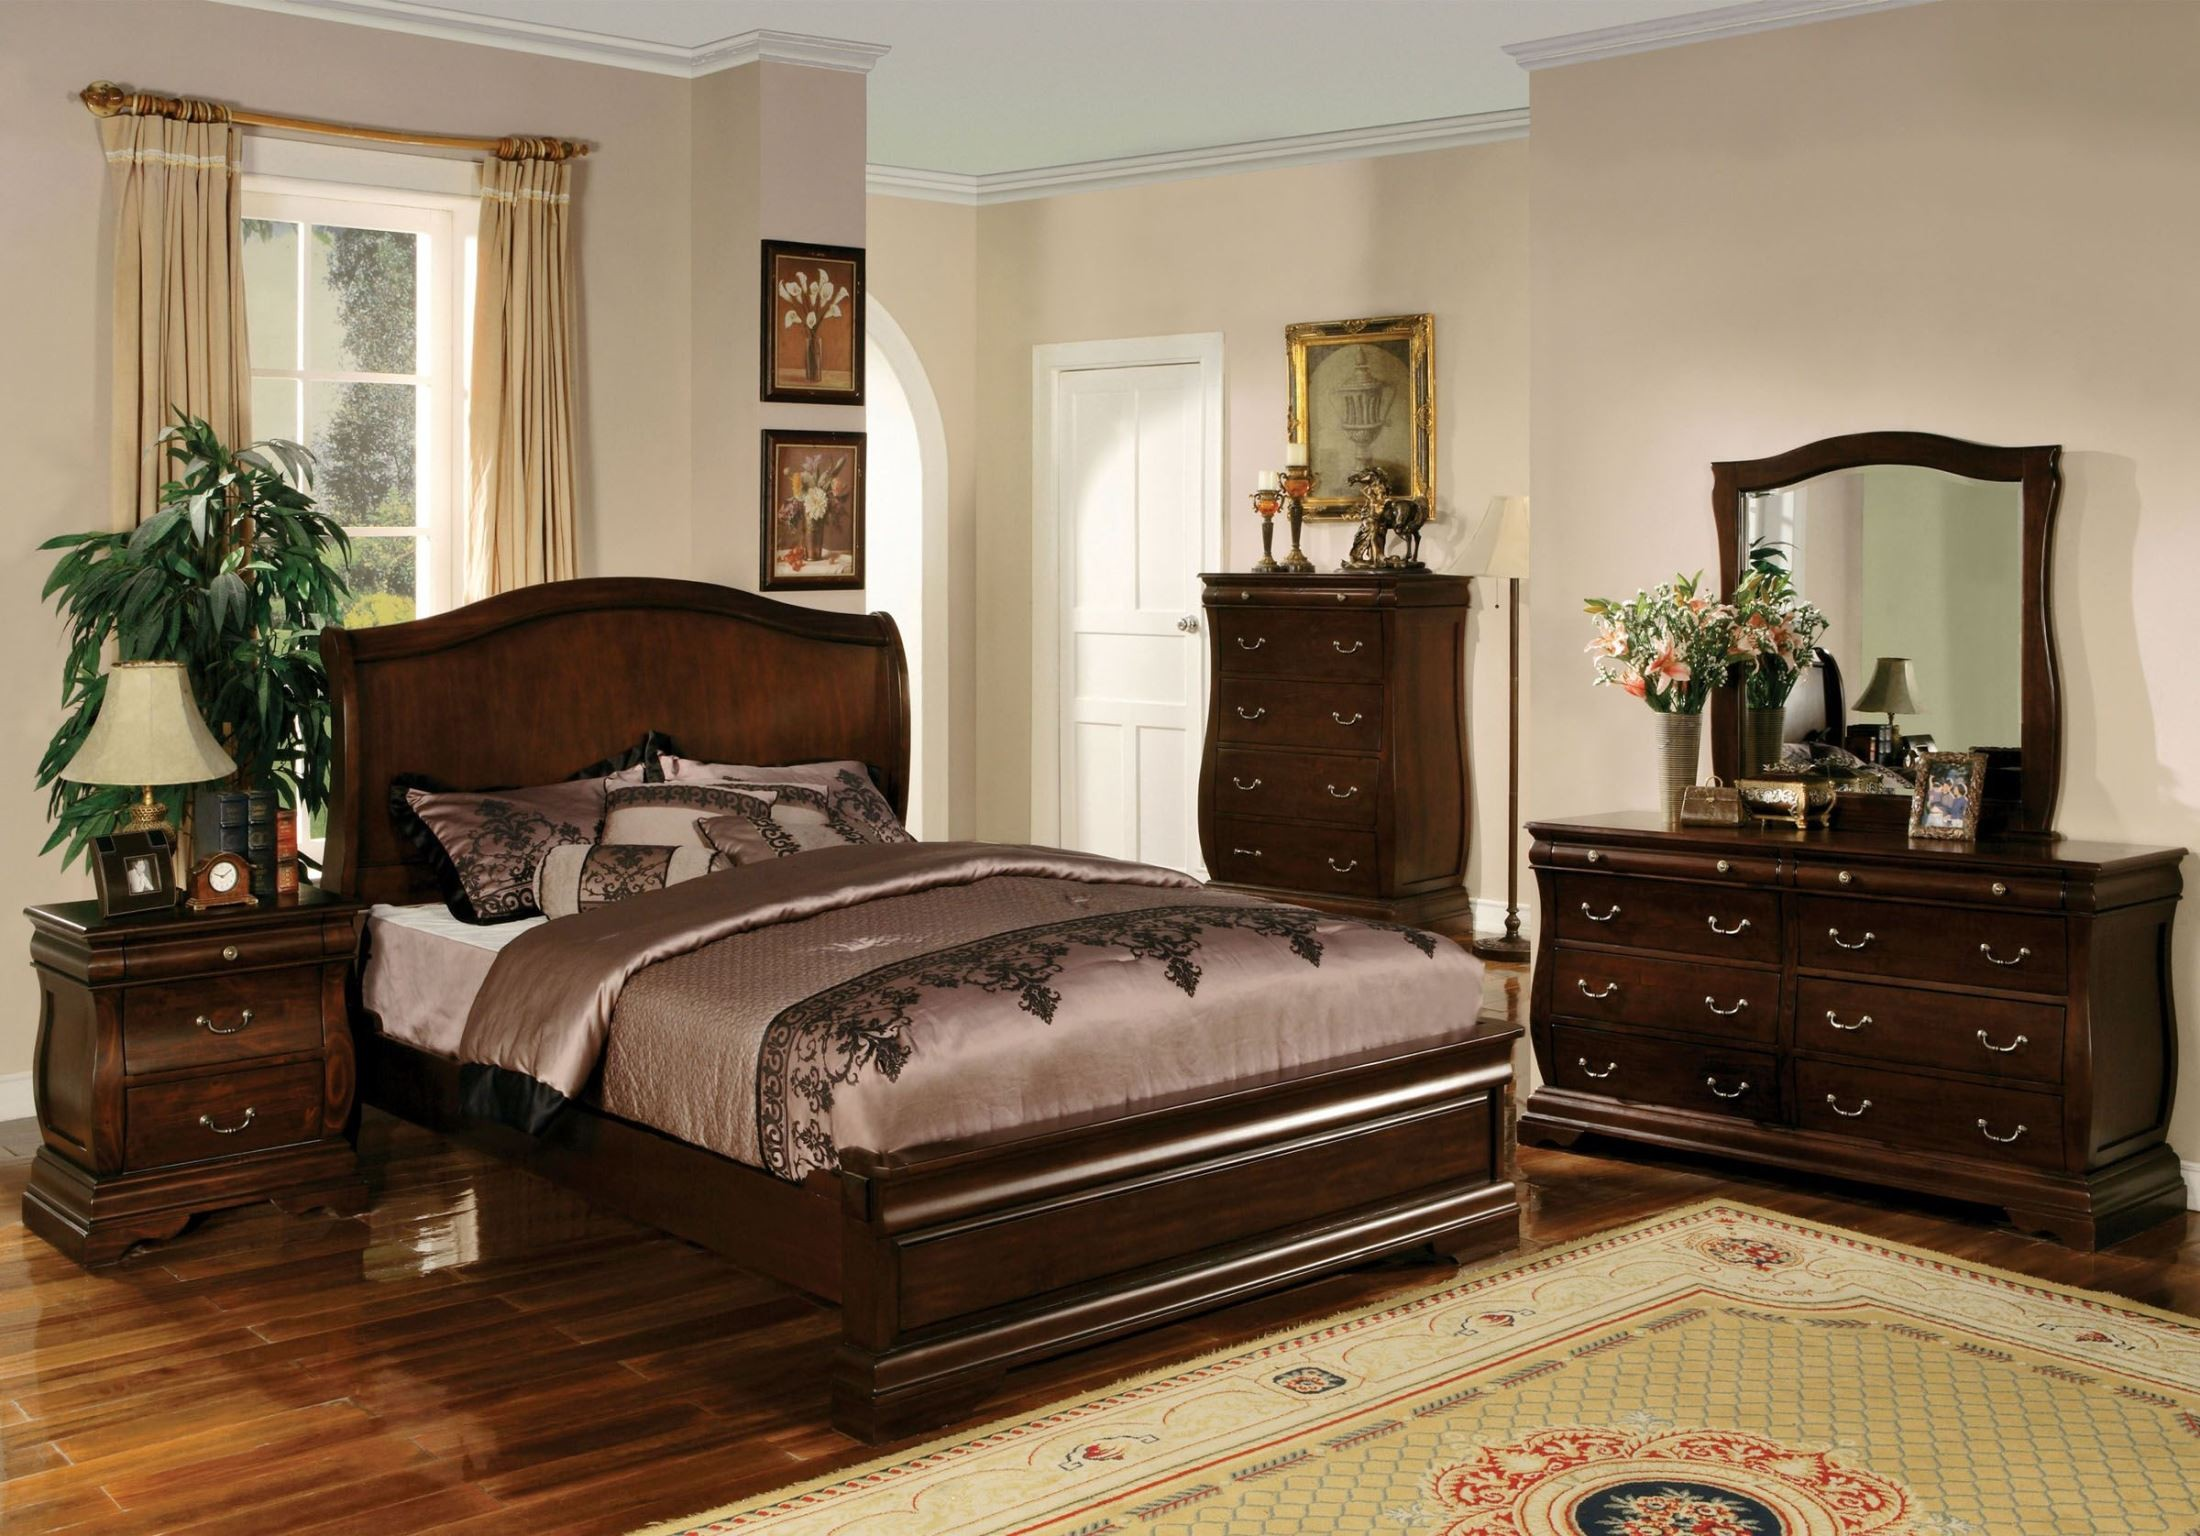 Esperia dark walnut platform bedroom set cm7503q bed for American black walnut bedroom furniture